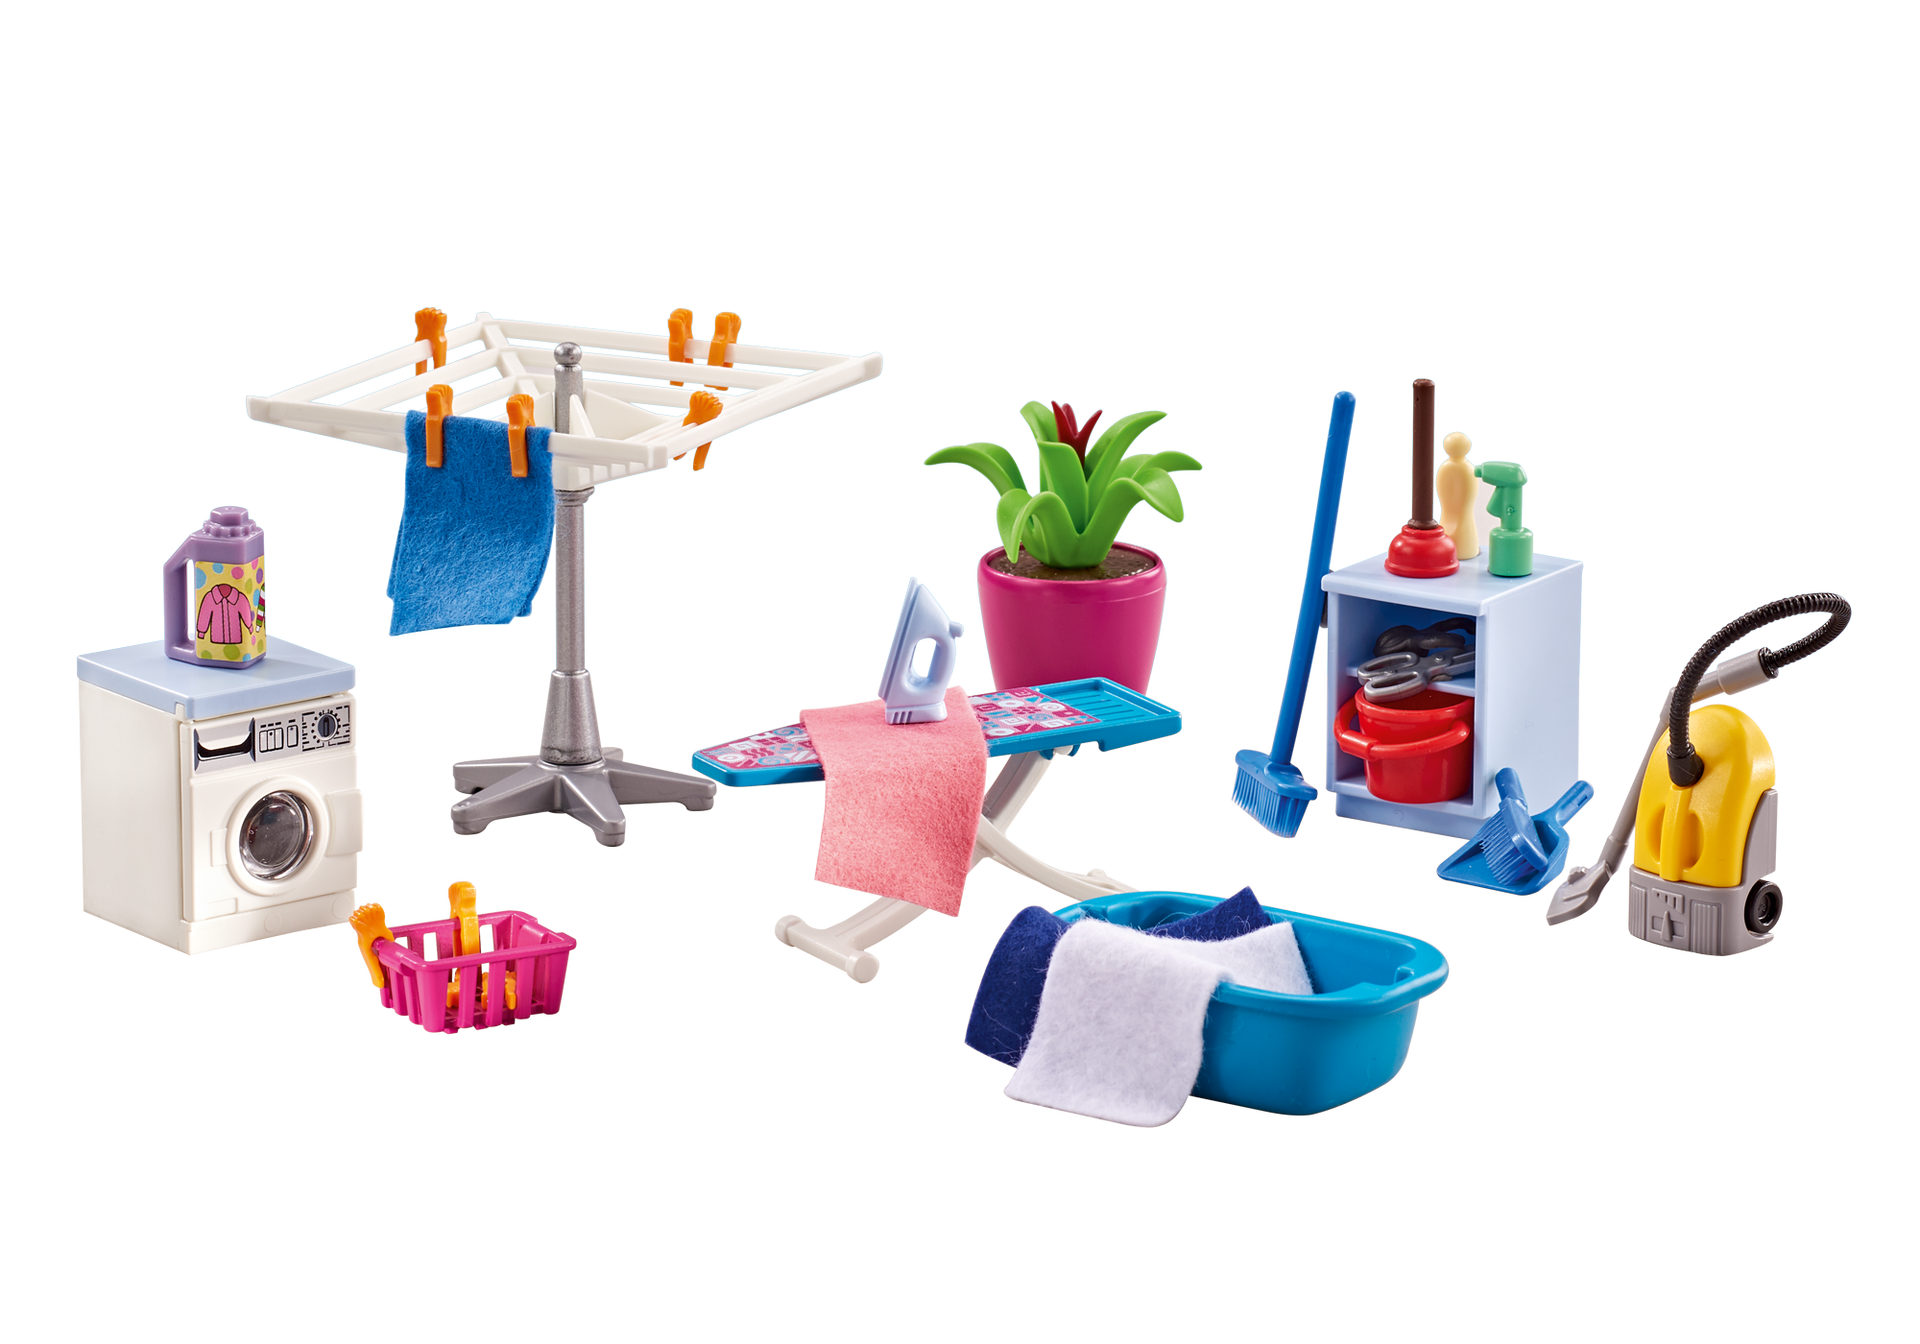 Laundry Room - 6557 - PLAYMOBIL® USA